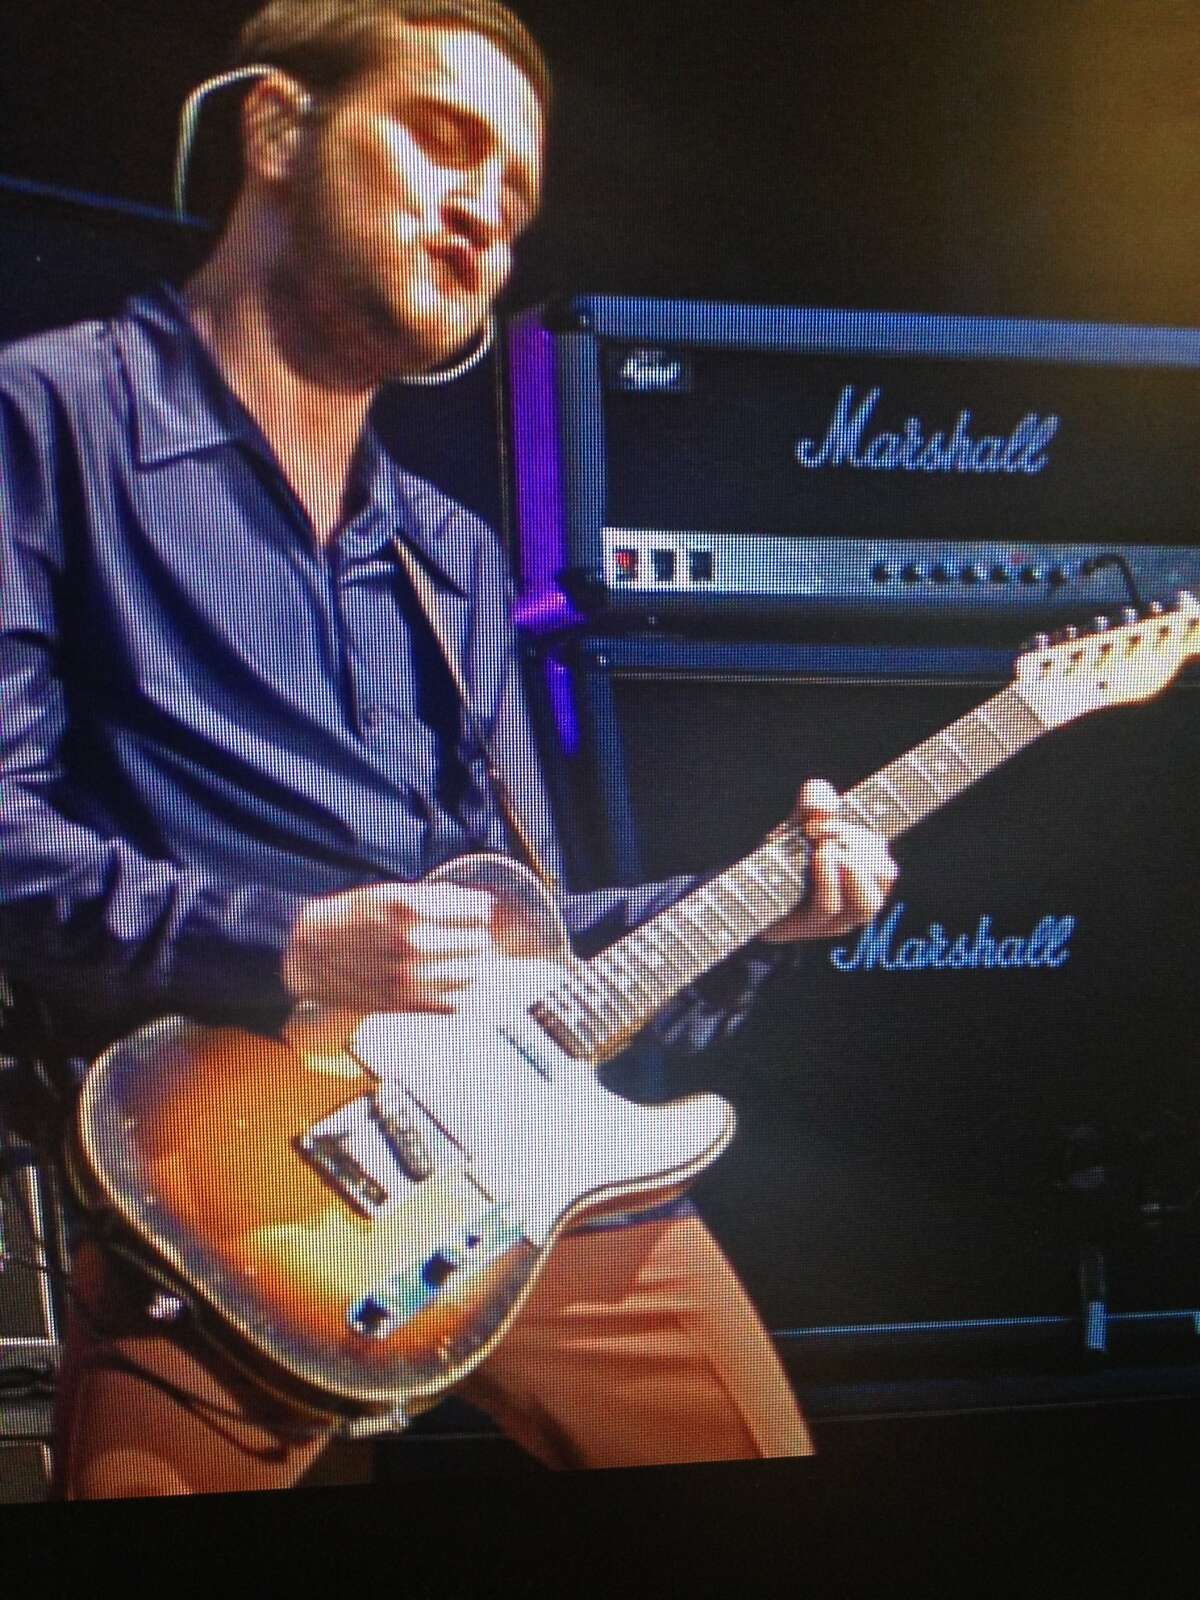 John Frusciante, a former guitarist with the Red Hot Chili Peppers, had his expensive guitar stolen in a burglary of his friend's home in the Bayview District Aug. 16, 2015. Police recovered the guitar and it was returned Aug. 27, 2015.